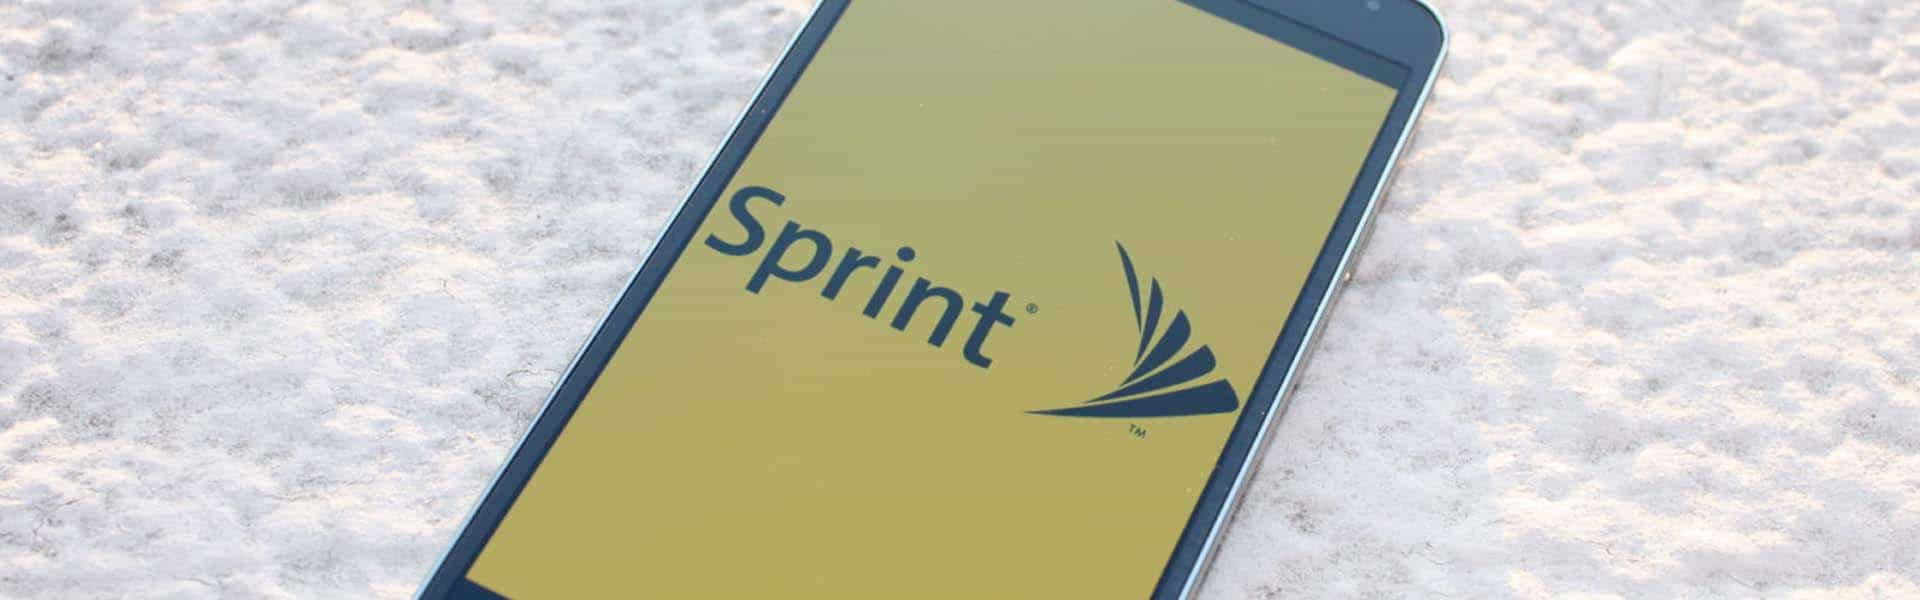 How To Activate Your Sprint Phone